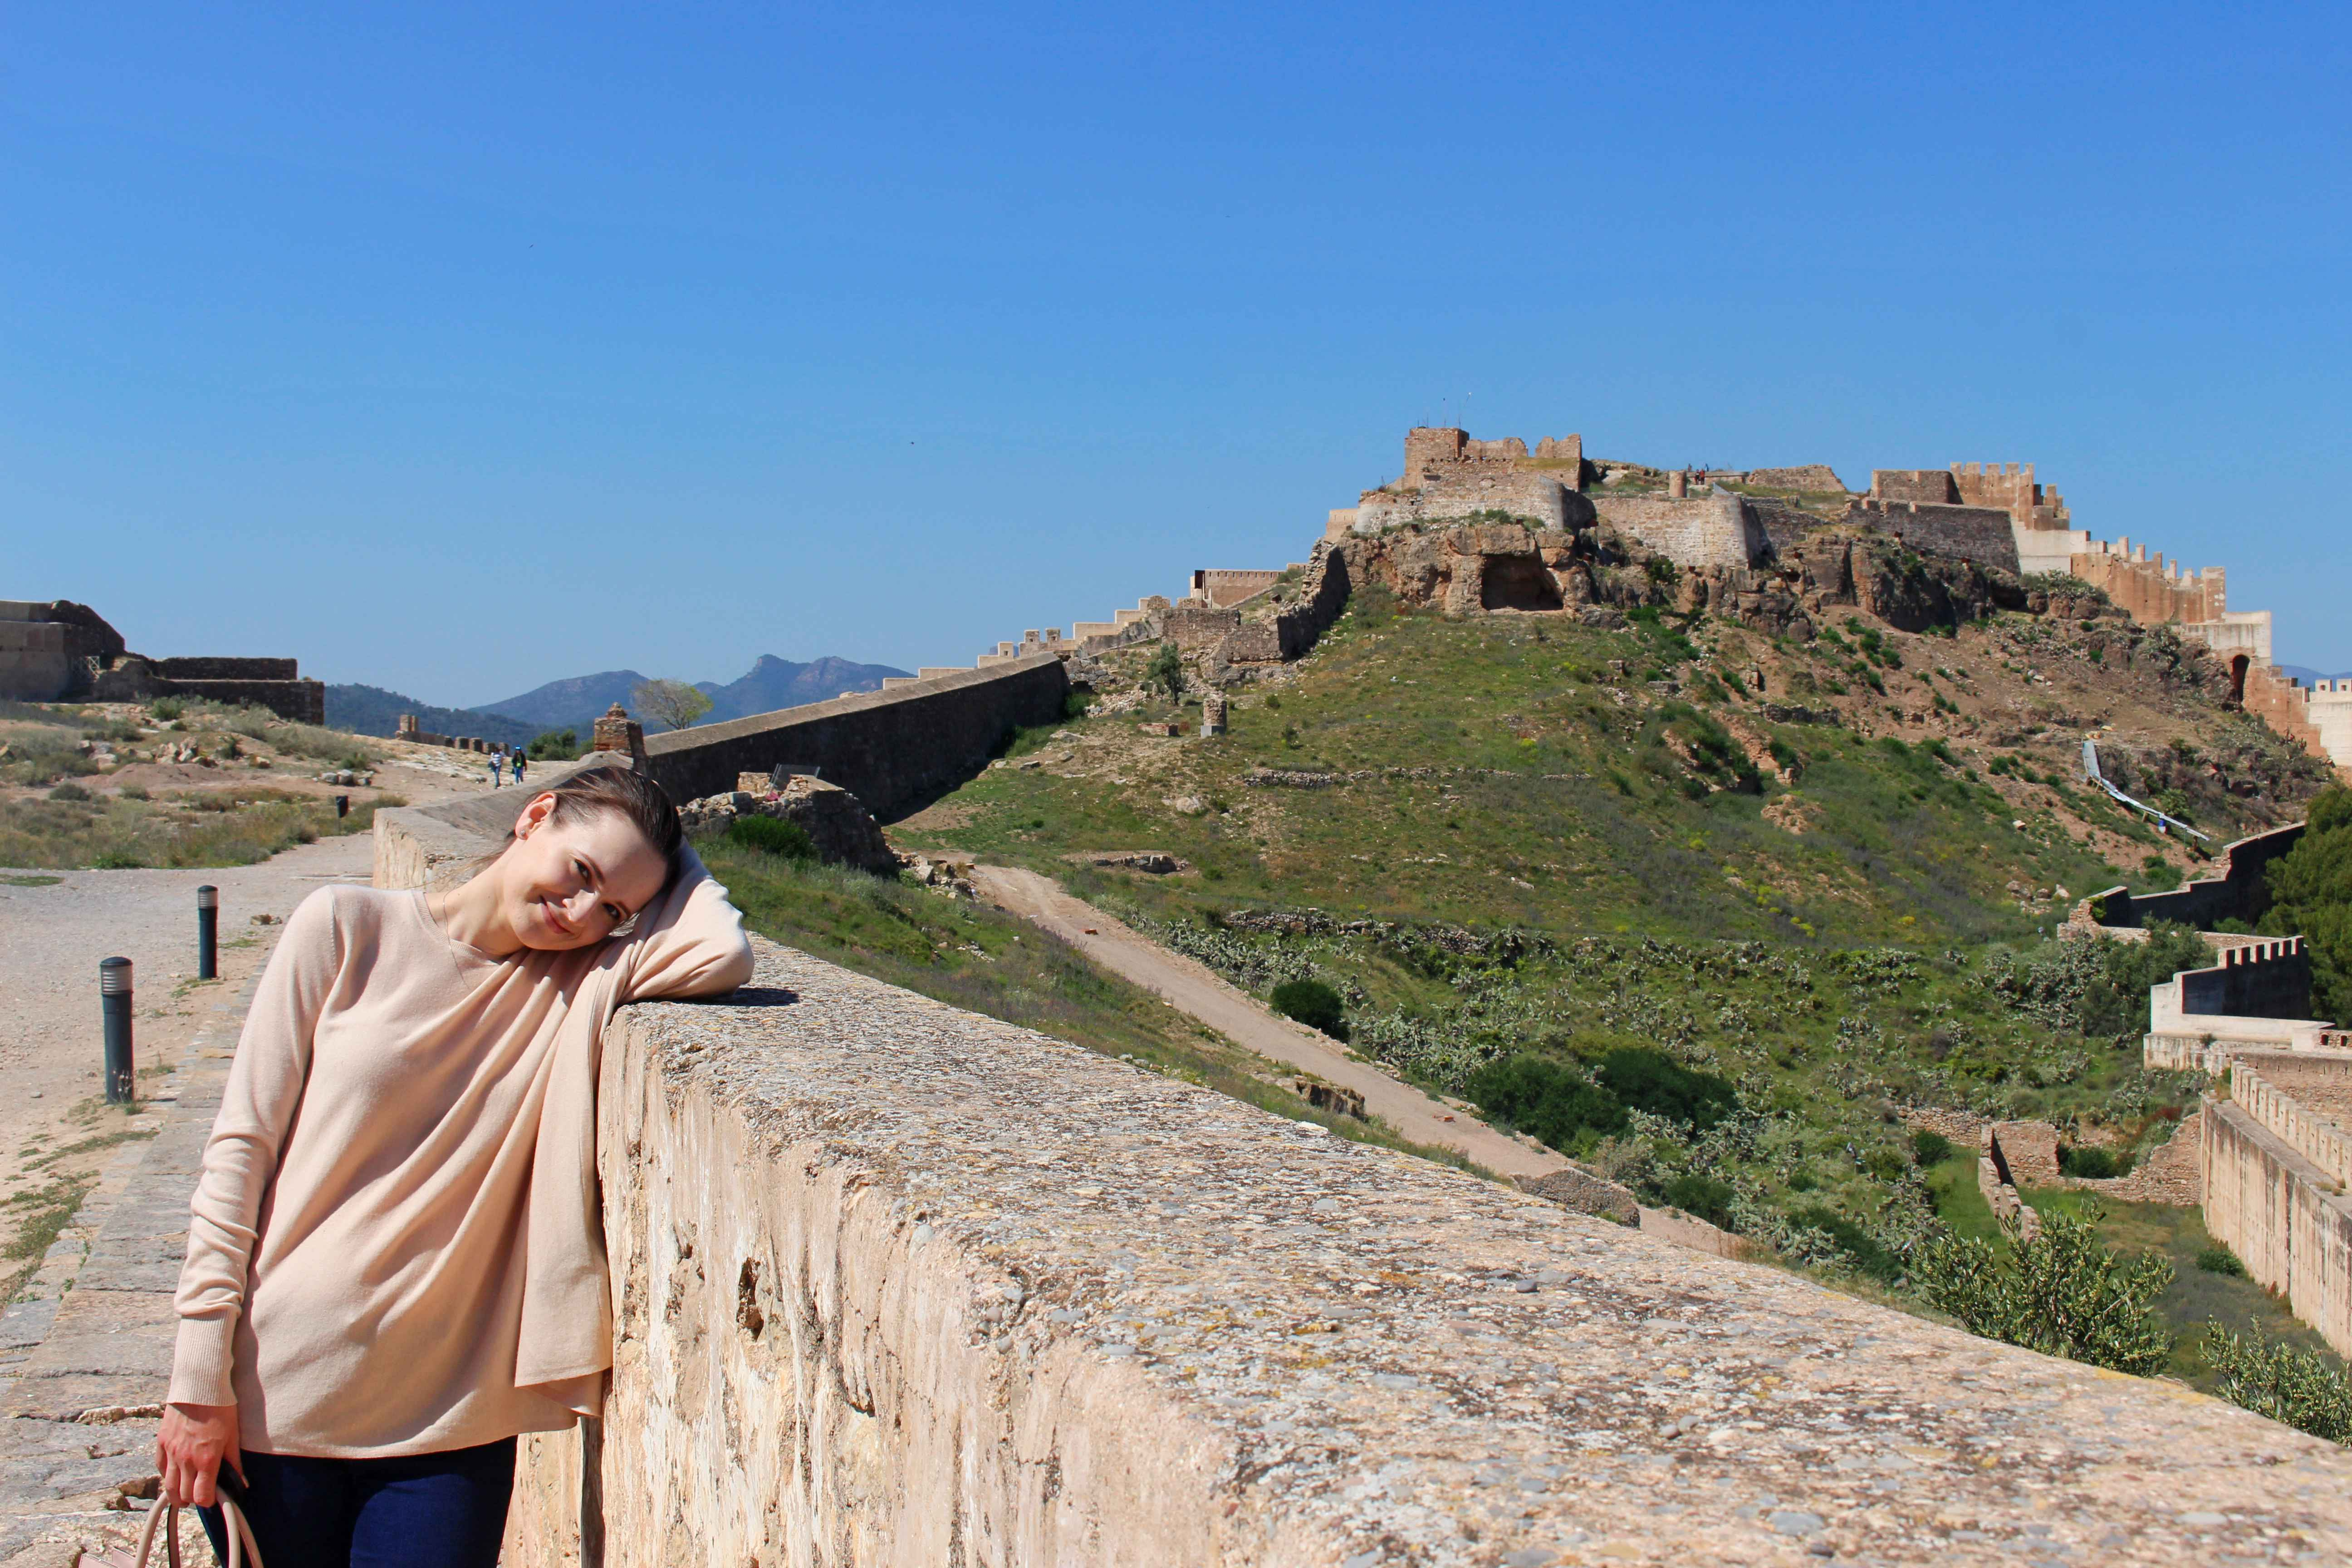 The Castle of Sagunto in Spain